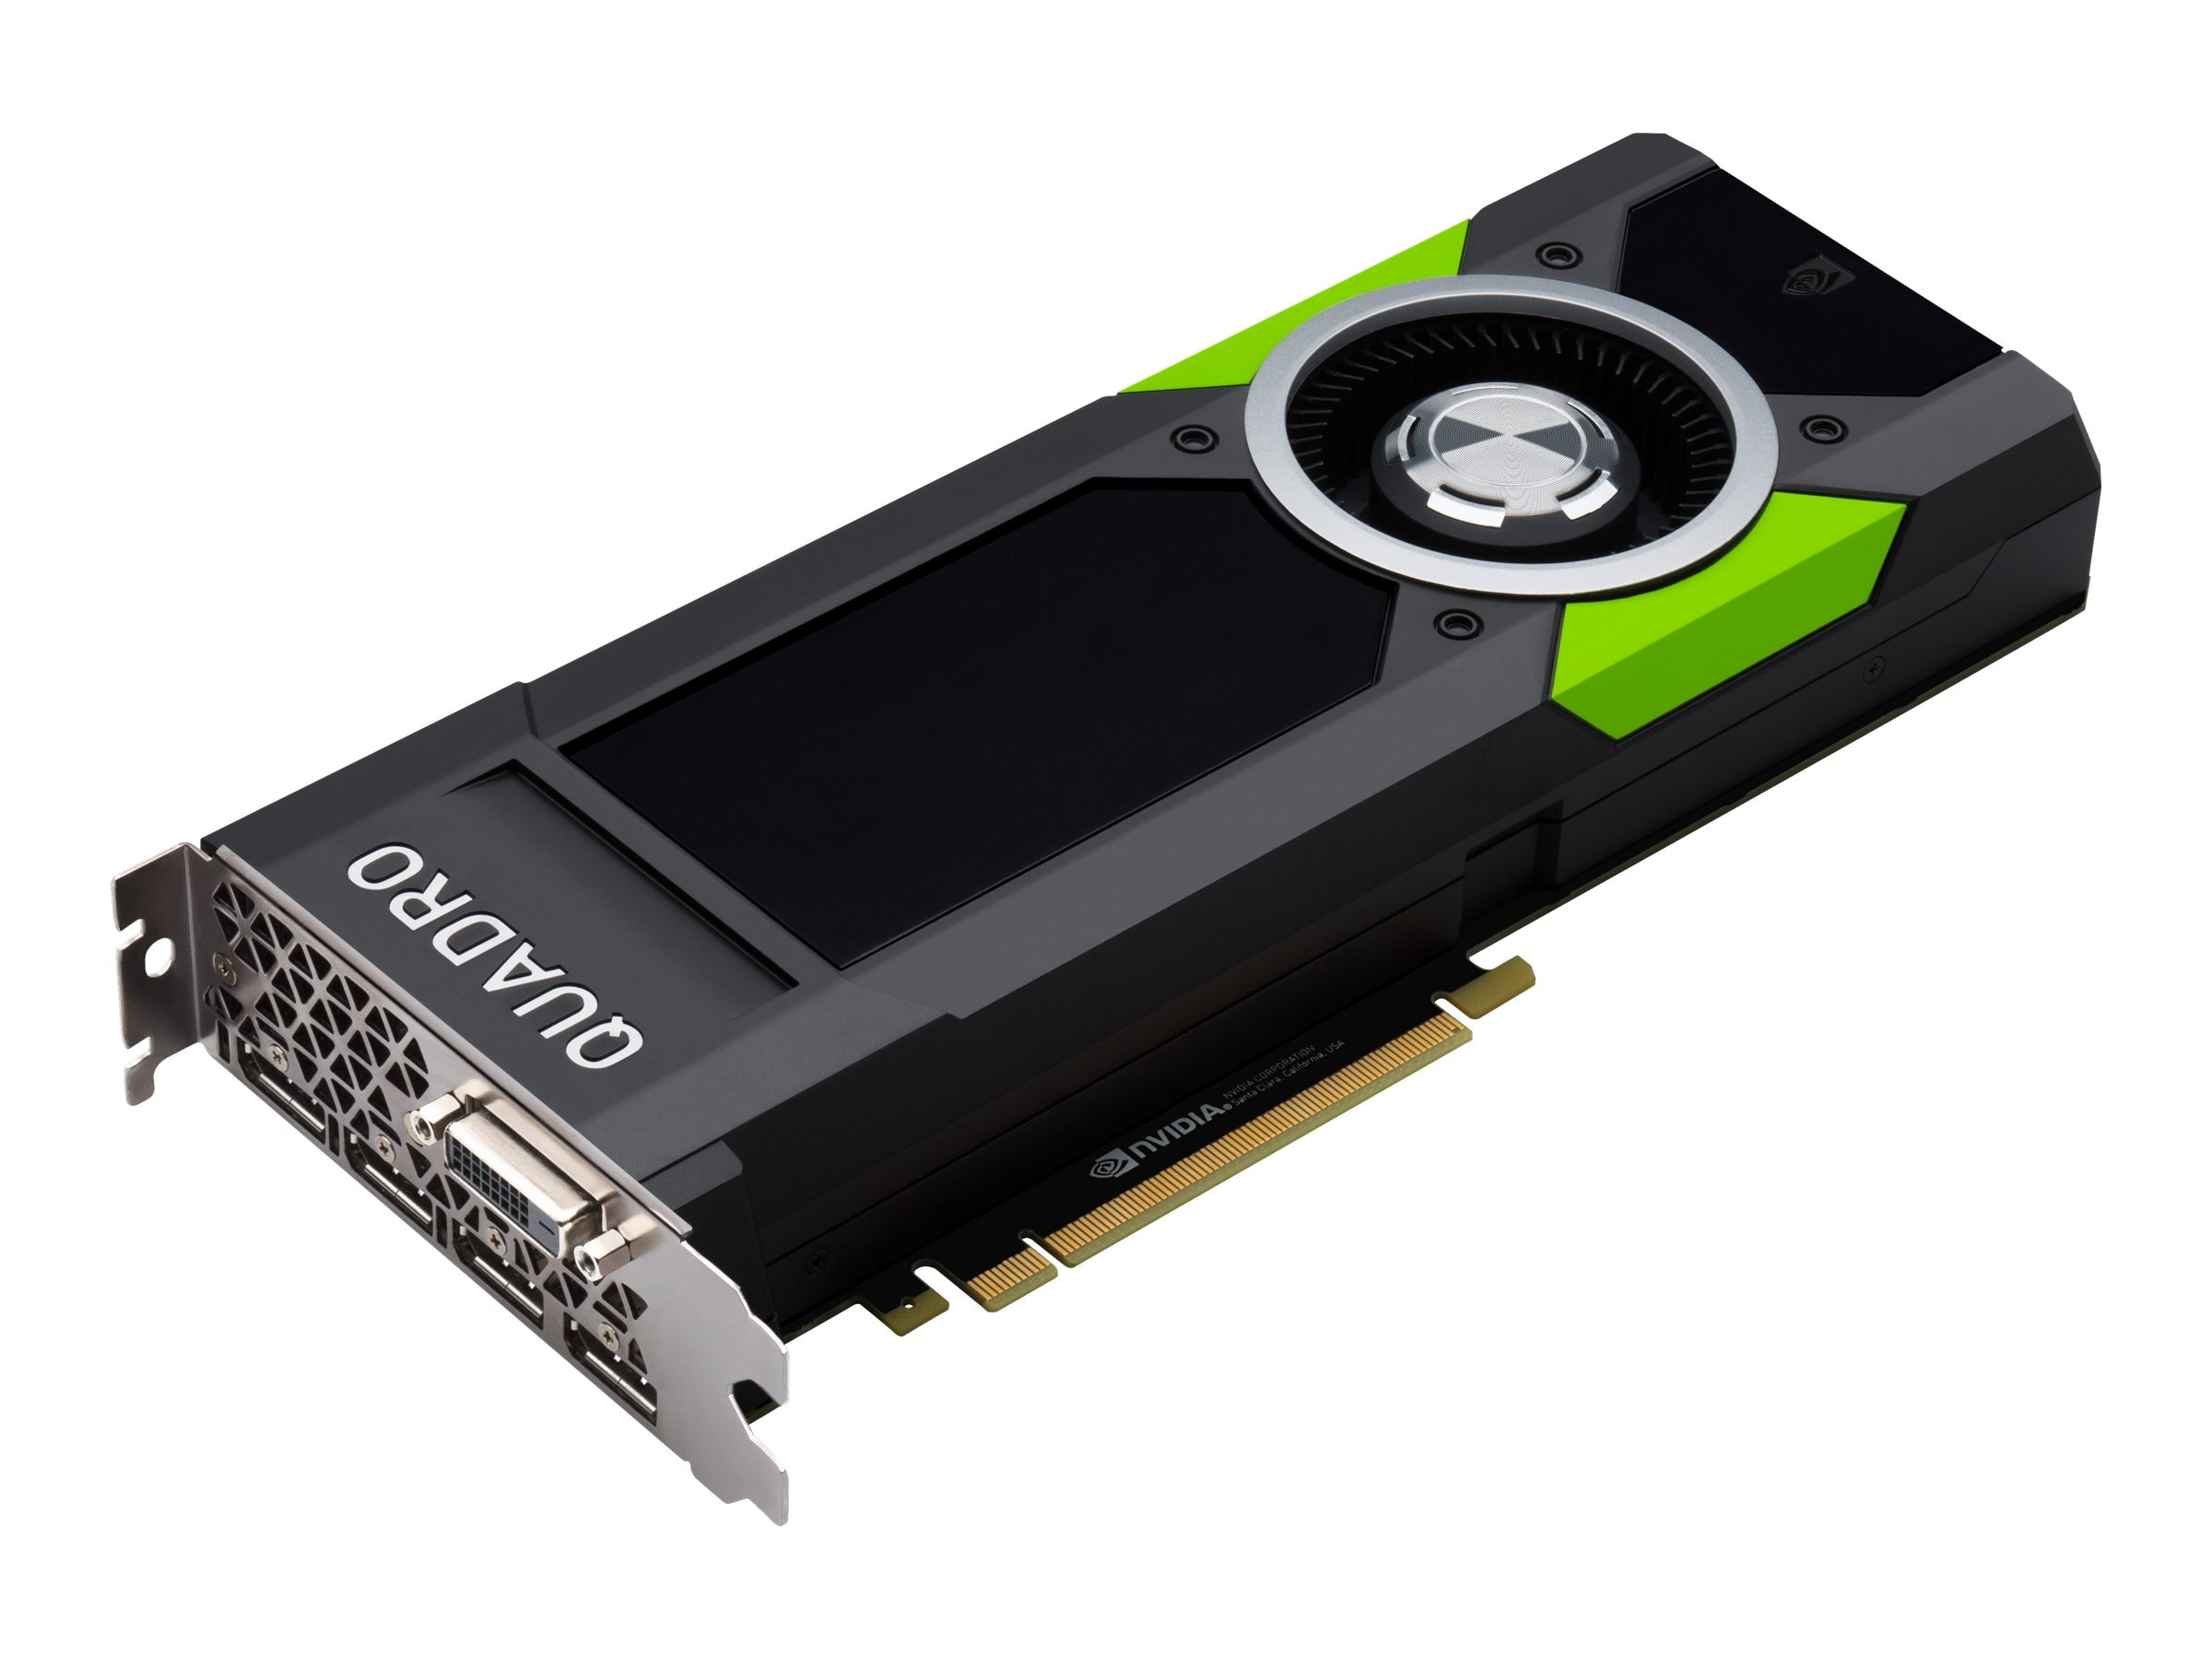 PNY NVIDIA Quadro P5000 PCIe 3.0 x16 Graphics Card, 16GB GDDR5